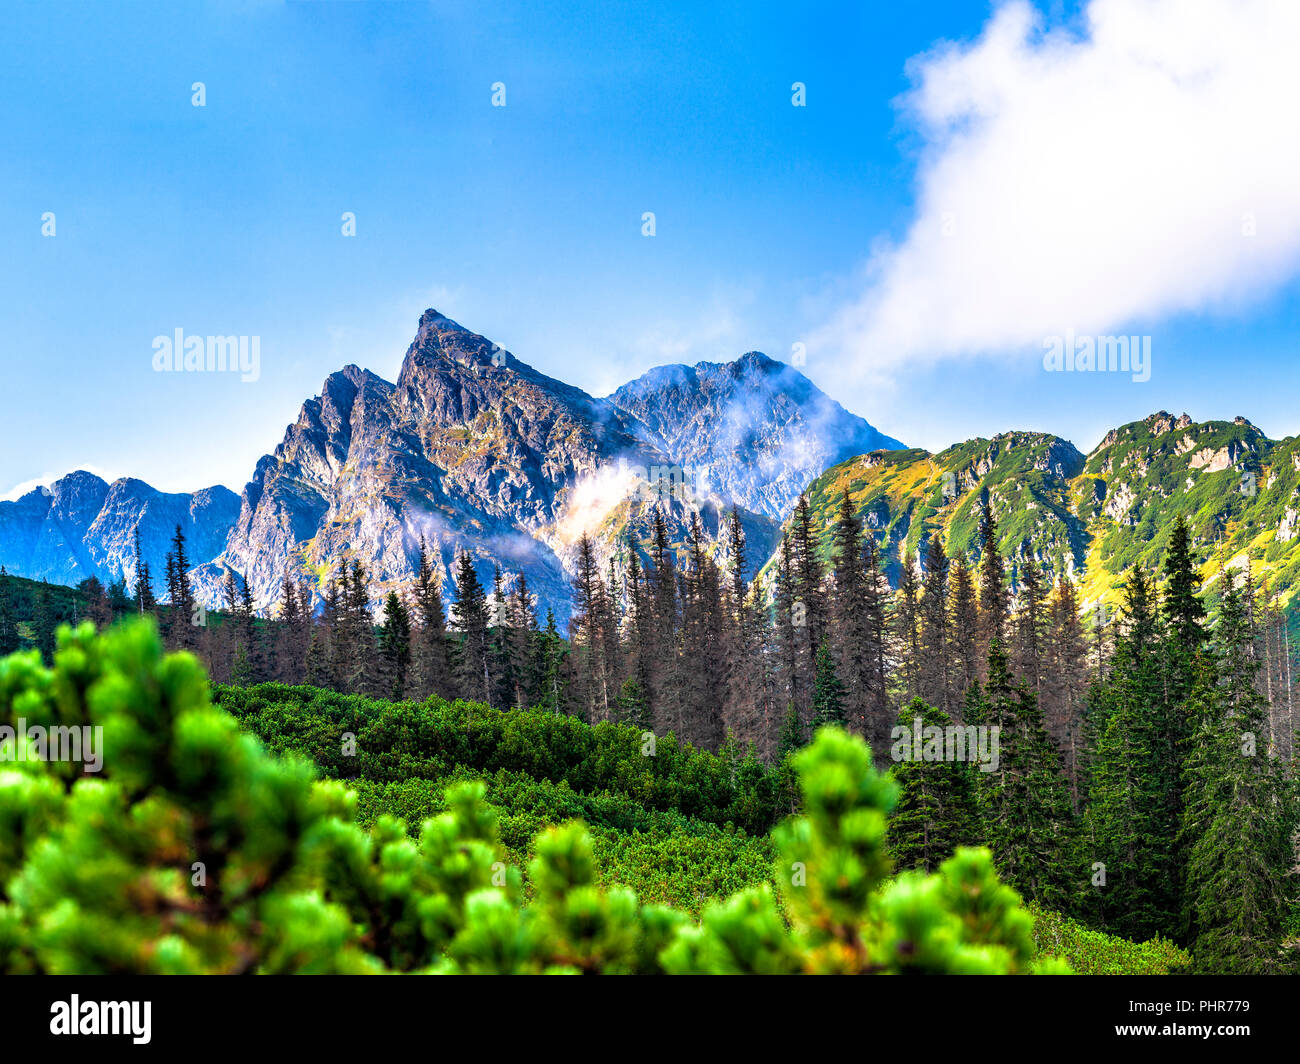 Polish Tatra mountains summer landscape with blue sky and white clouds. Stock Photo